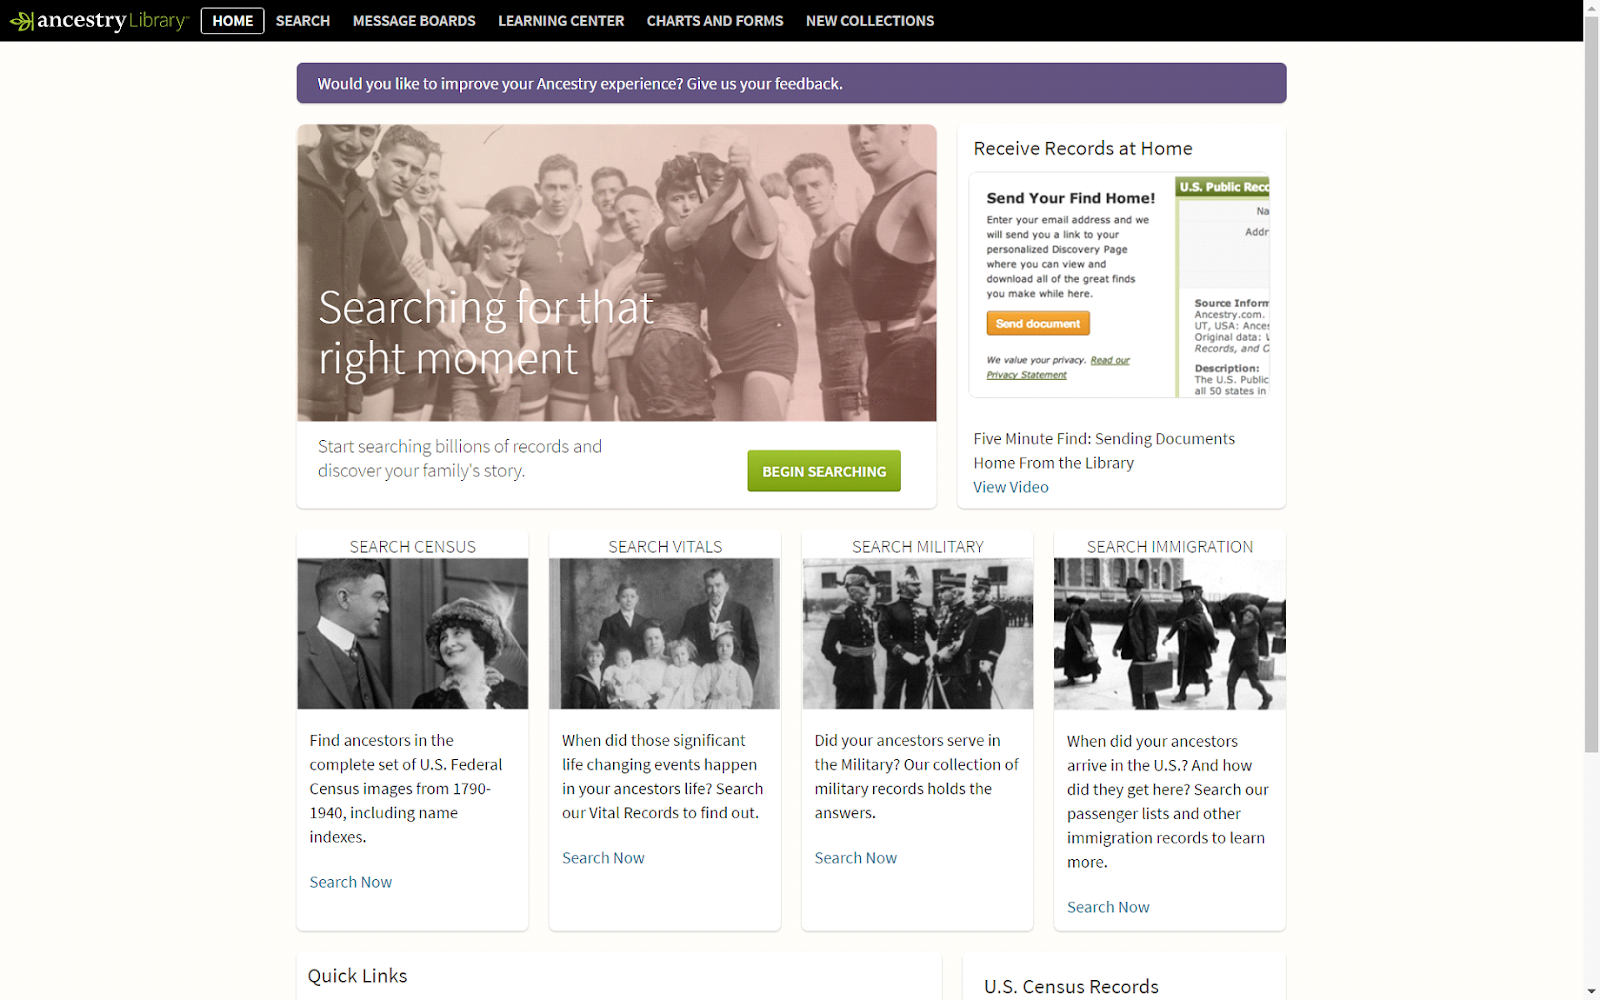 Search billions of records on ancestry com - With More Than 200 Billion Images And Records From Over 9 000 Databases Searching Can Be Very Complex But It Doesn T Have To Be